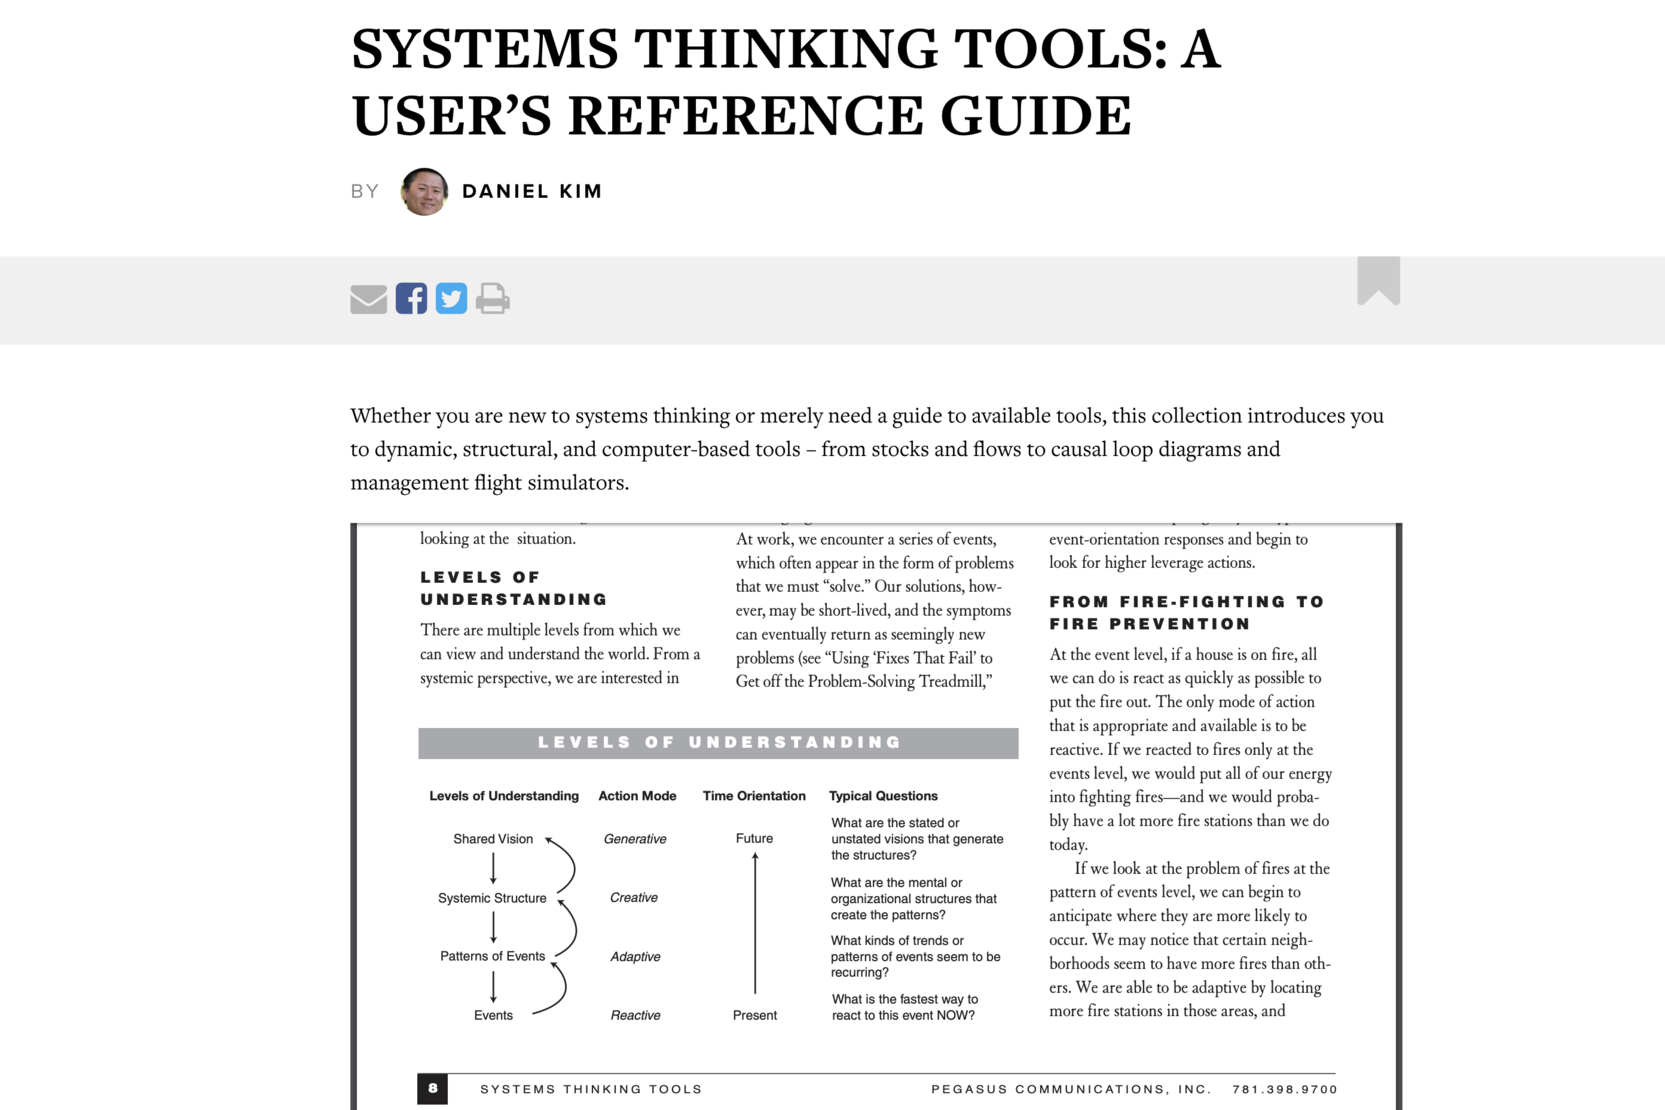 systems_thinking_tools_by_daniel_kim.png